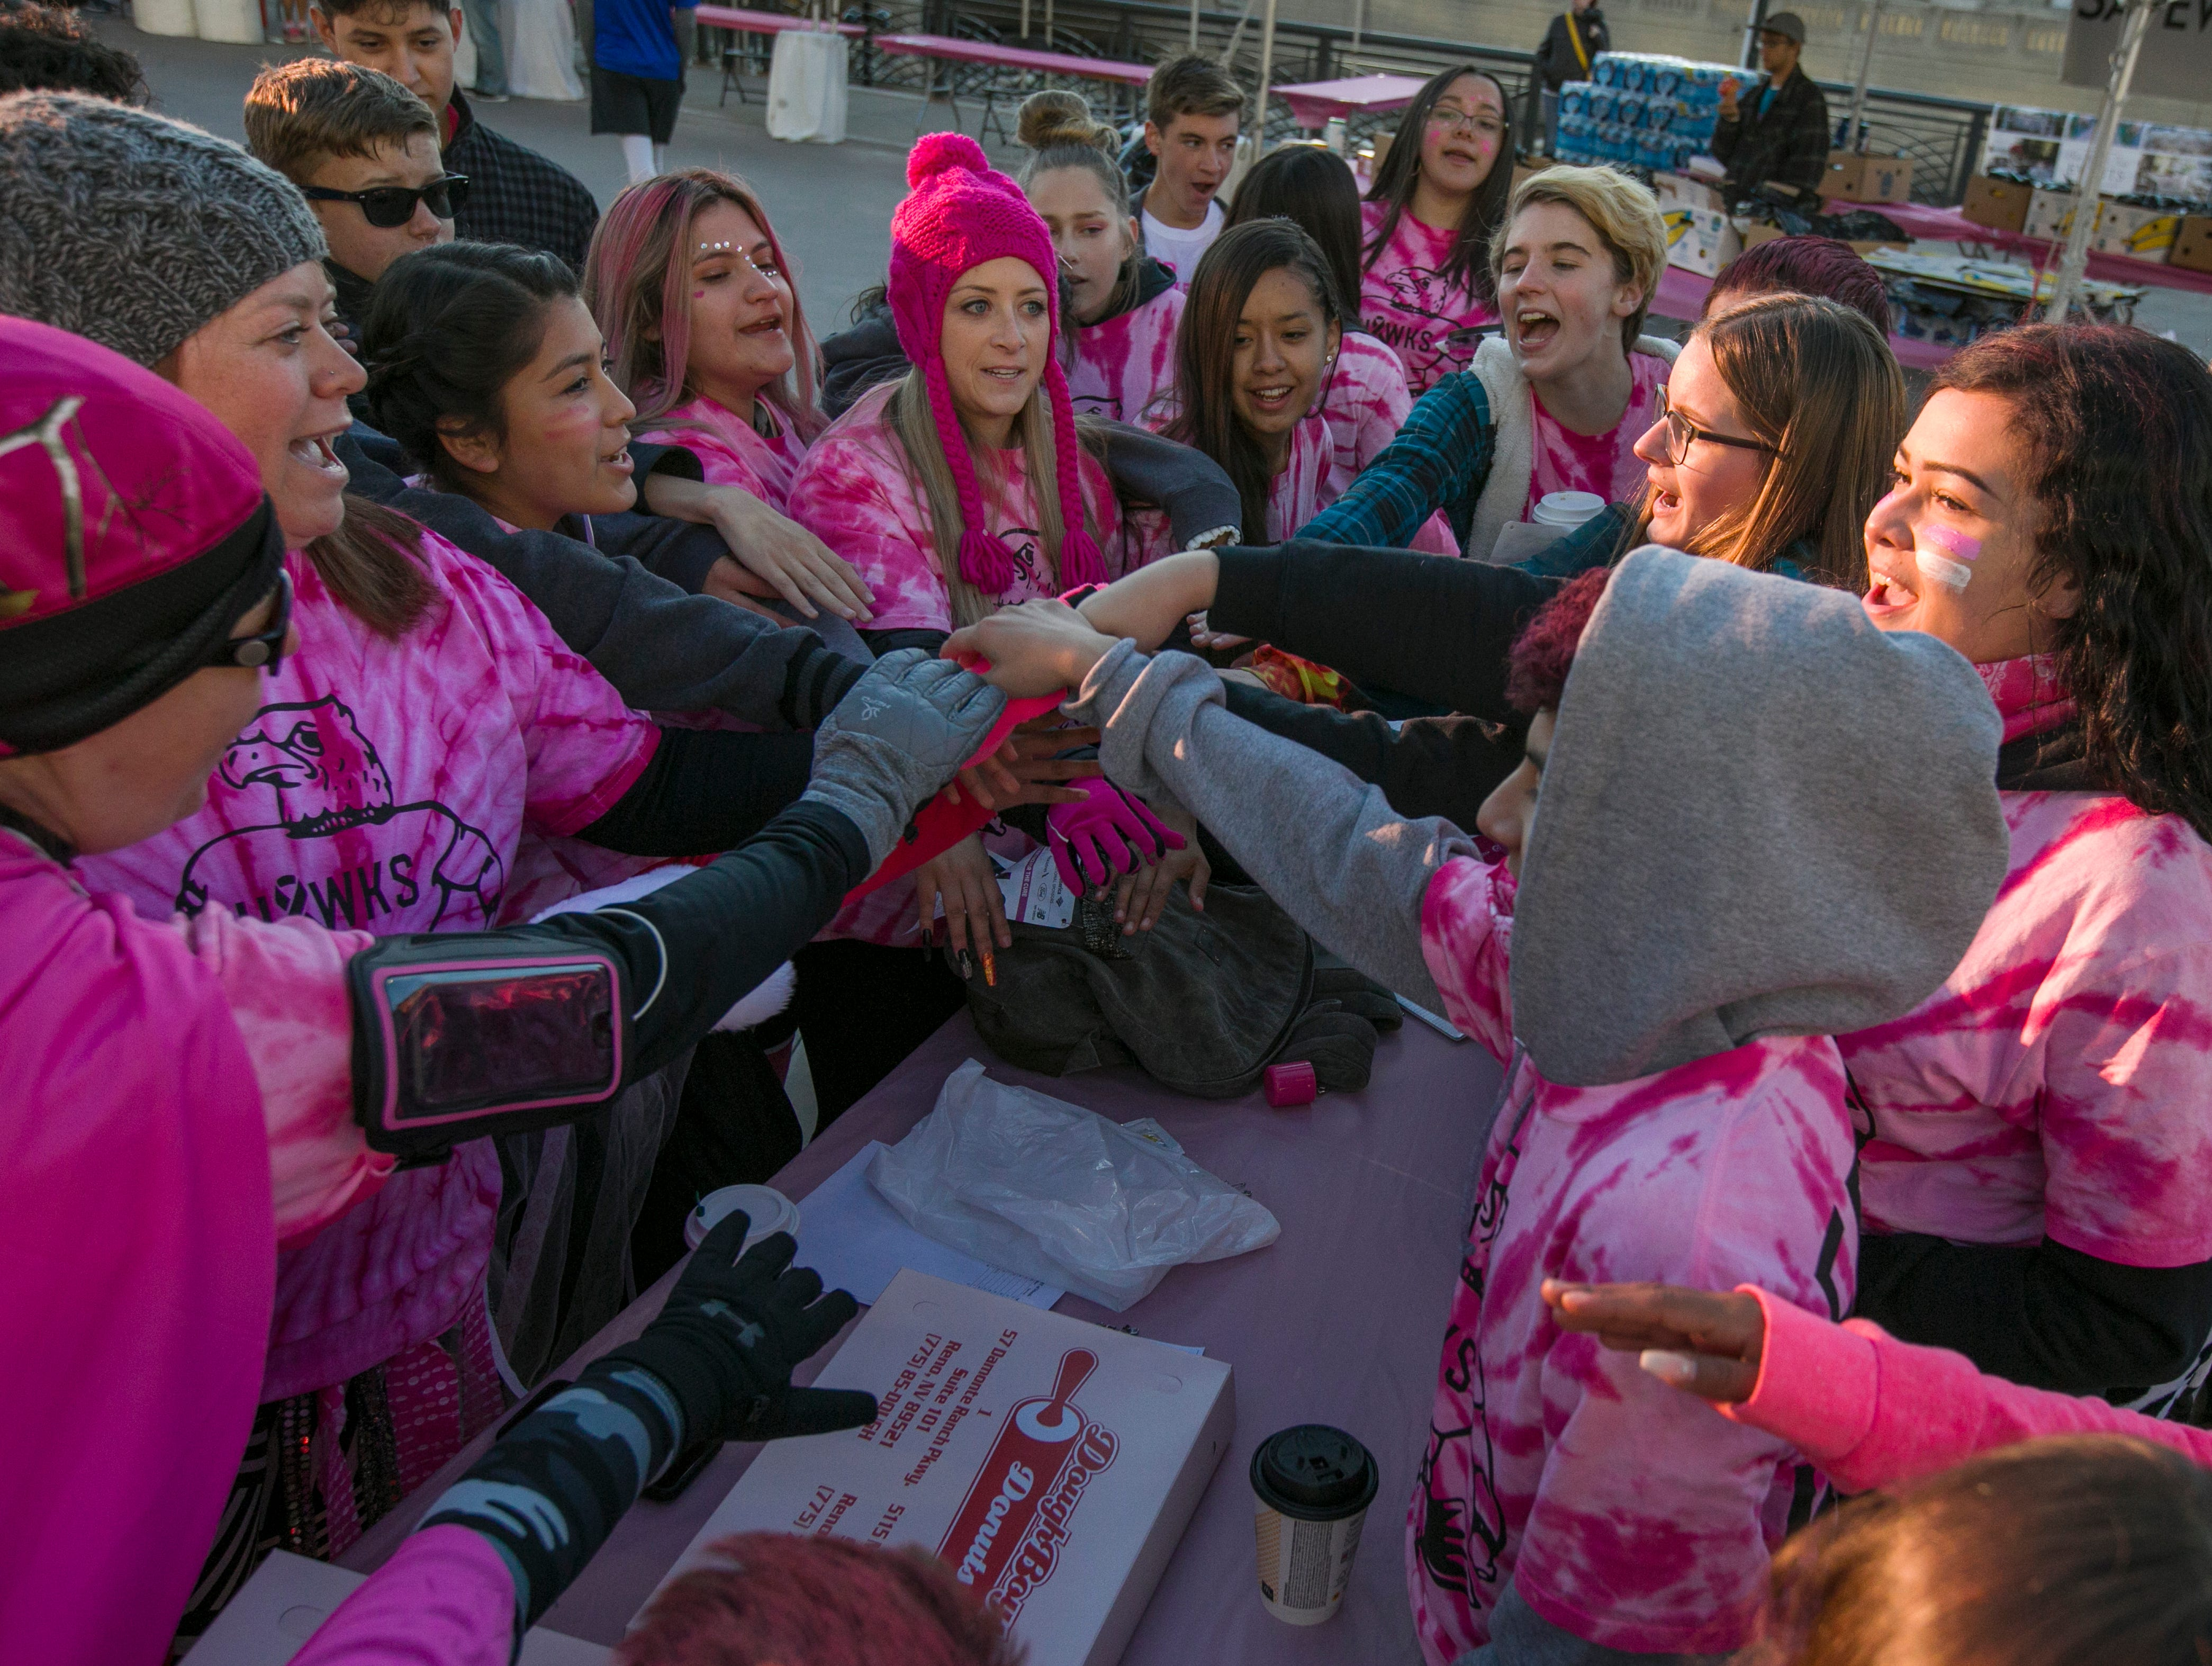 Teams cheer before the start of the Susan G. Komen Race for the Cure on Sunday, October 14,  2018 in downtown Reno.